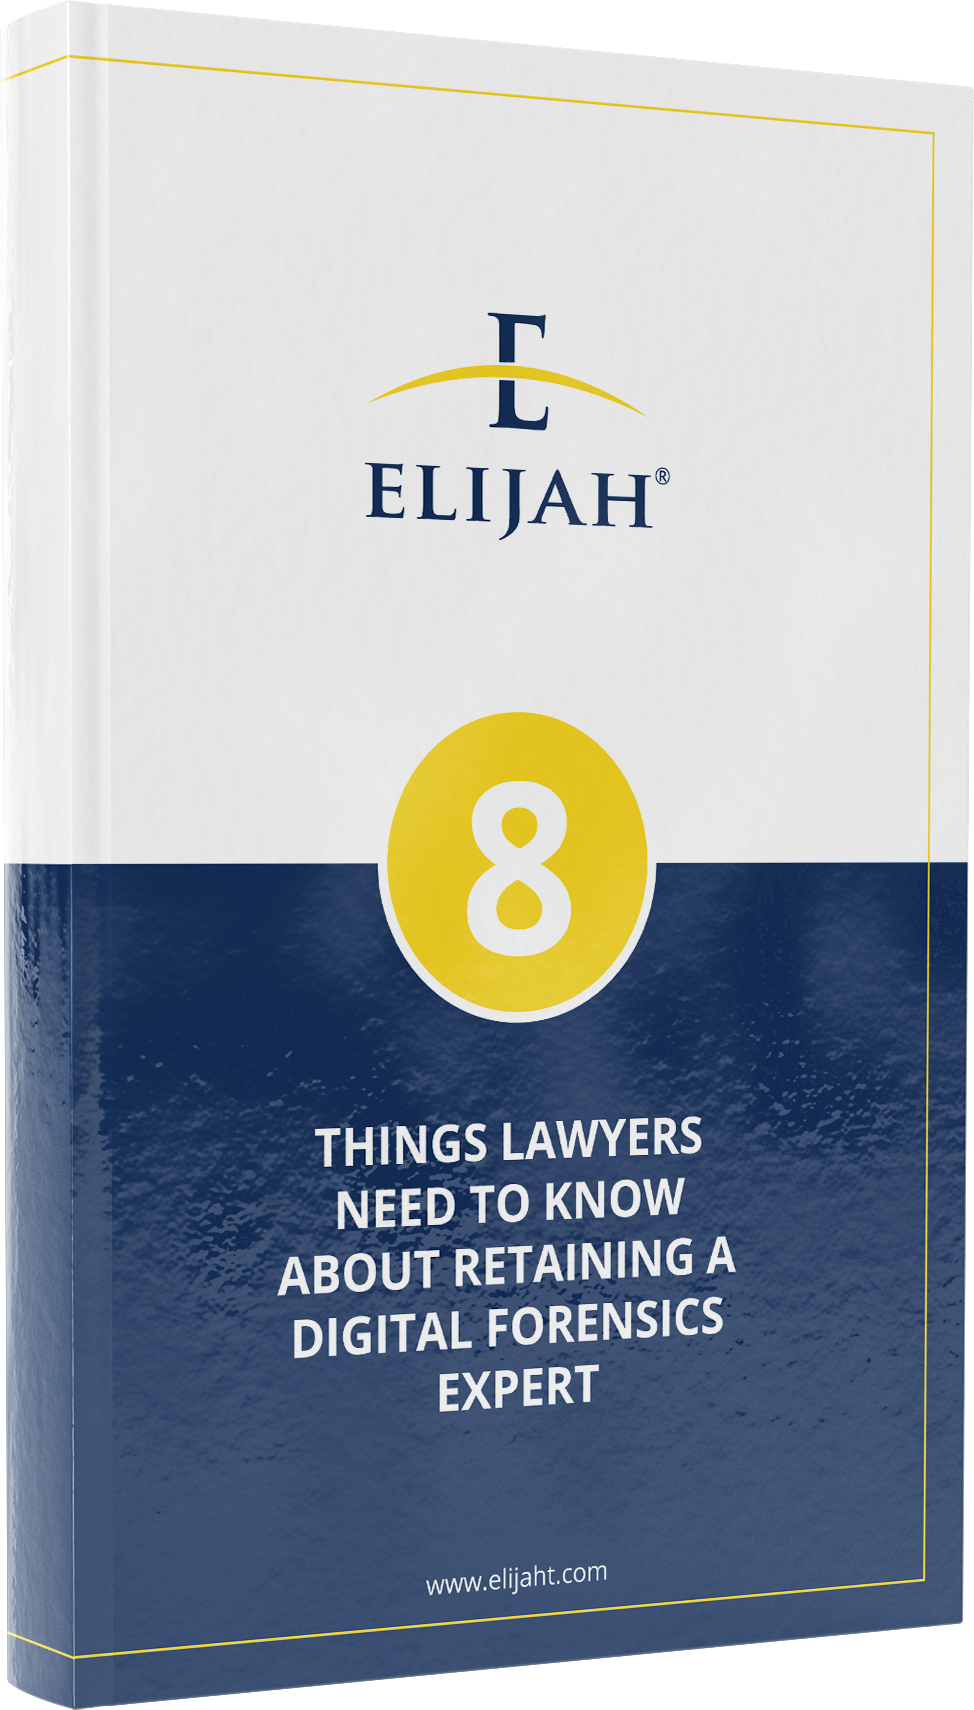 8-Things-Lawyers-Need-To-Know-About-Retaining-A-Digital-Forensics-Expert